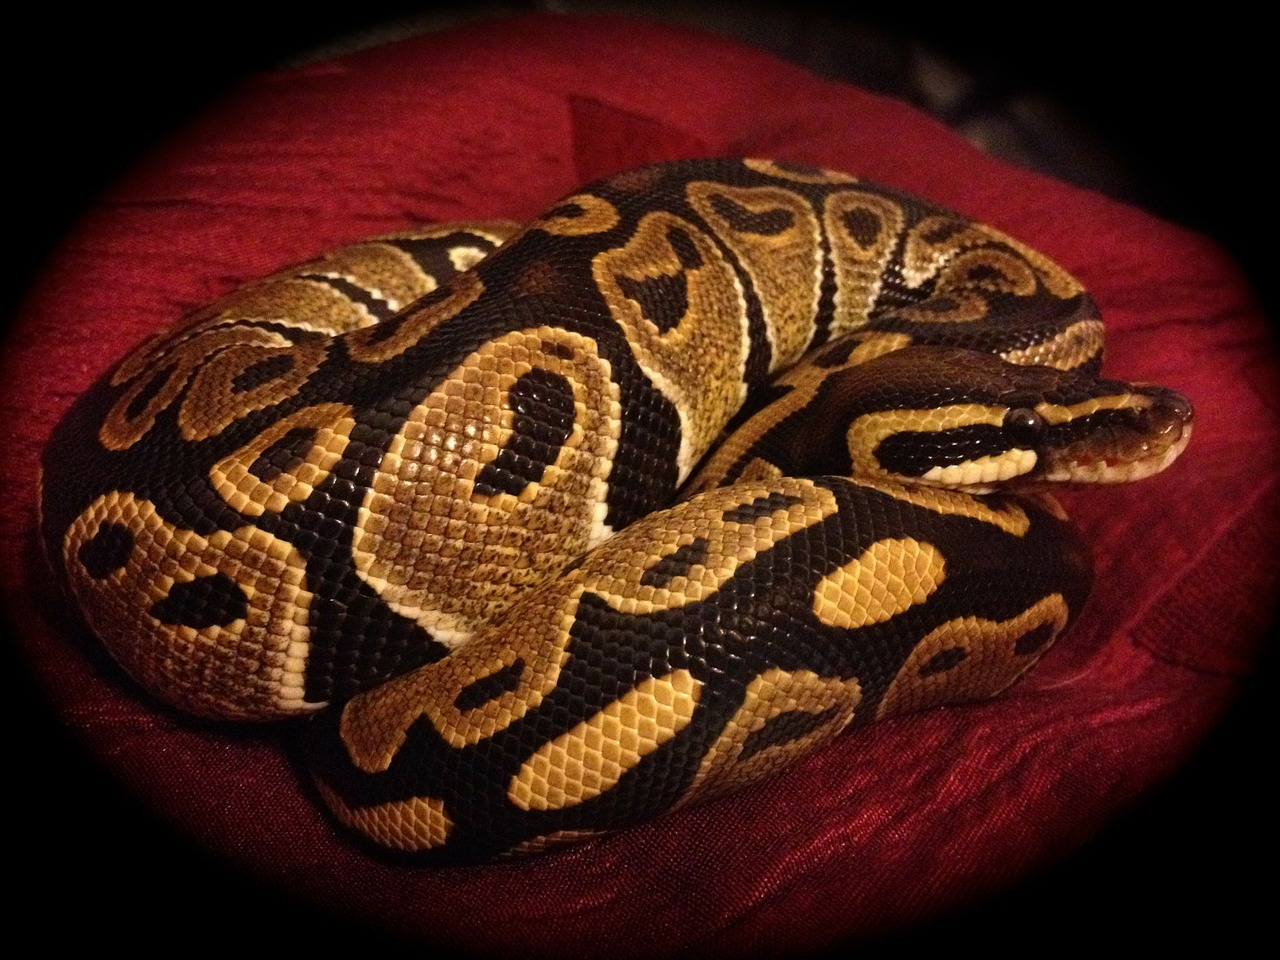 ball python snake normal free photo